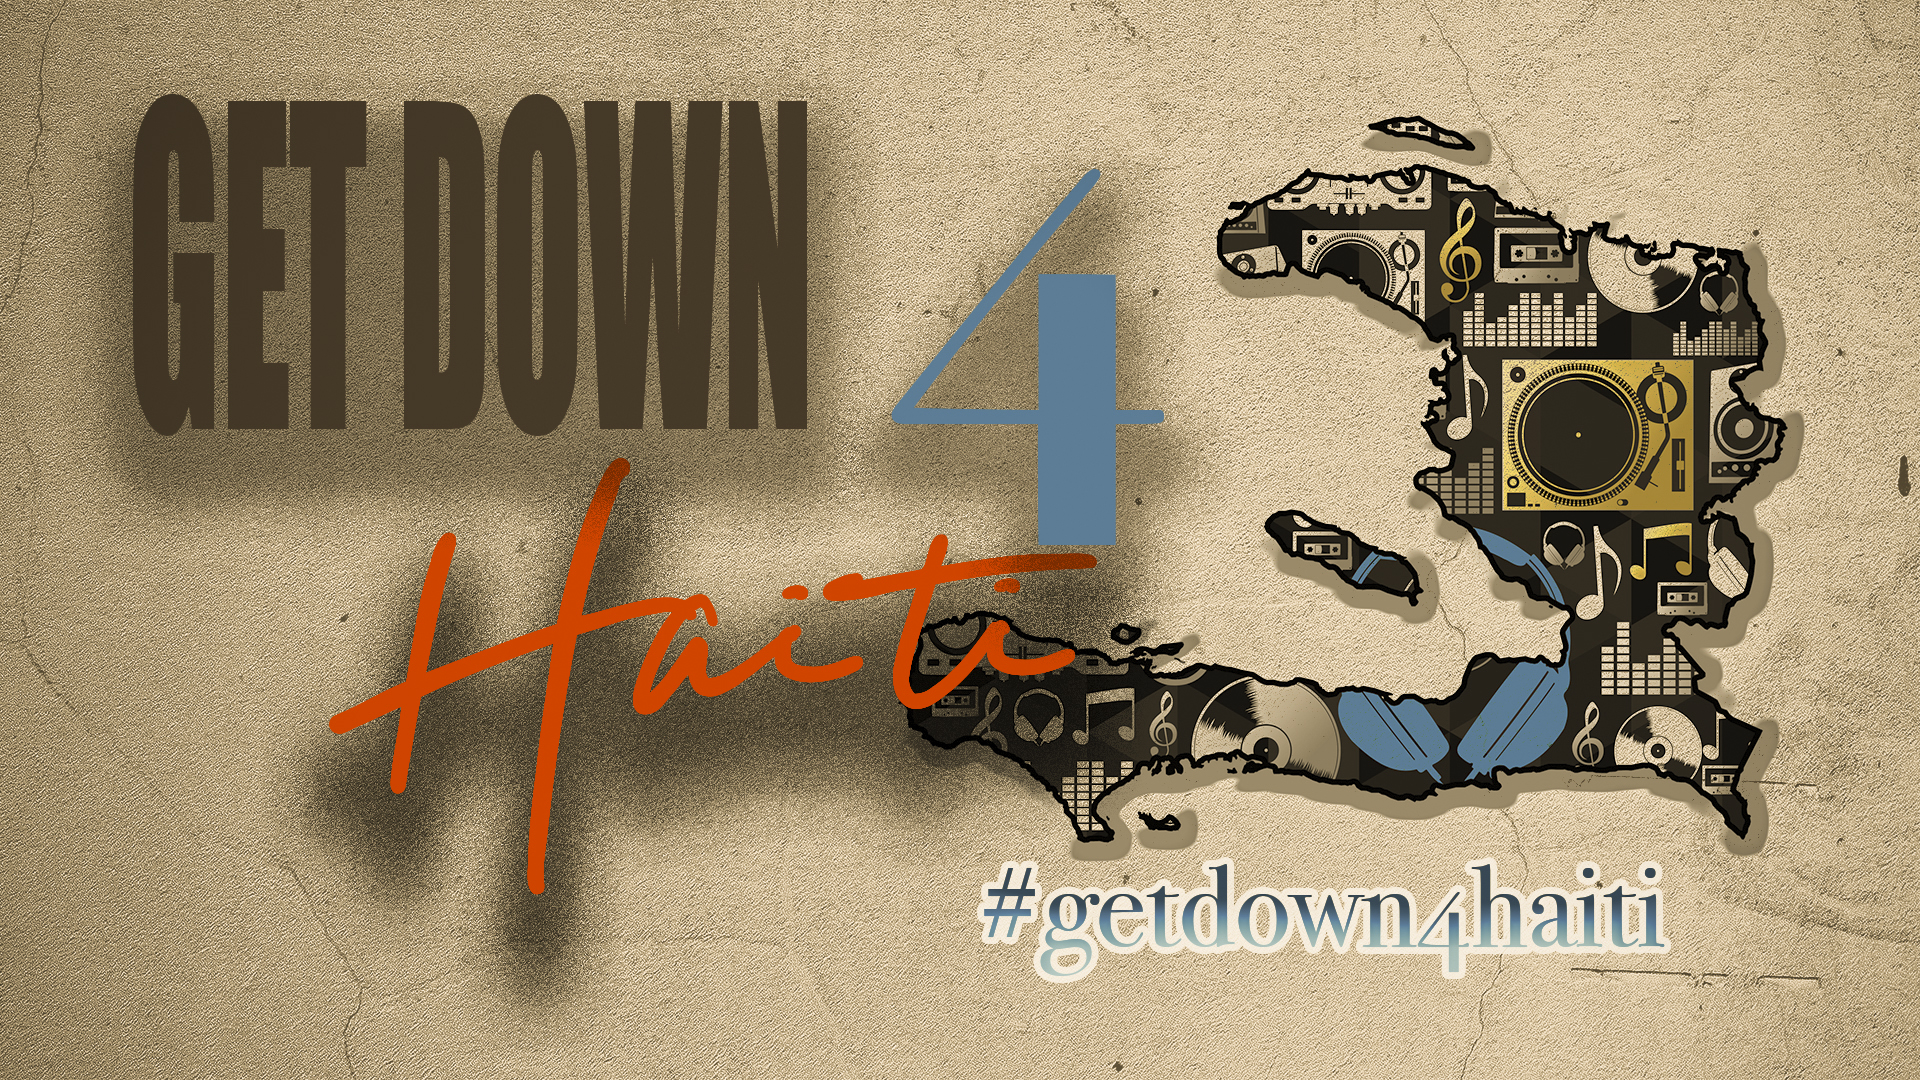 Click here to support #getdown4haiti